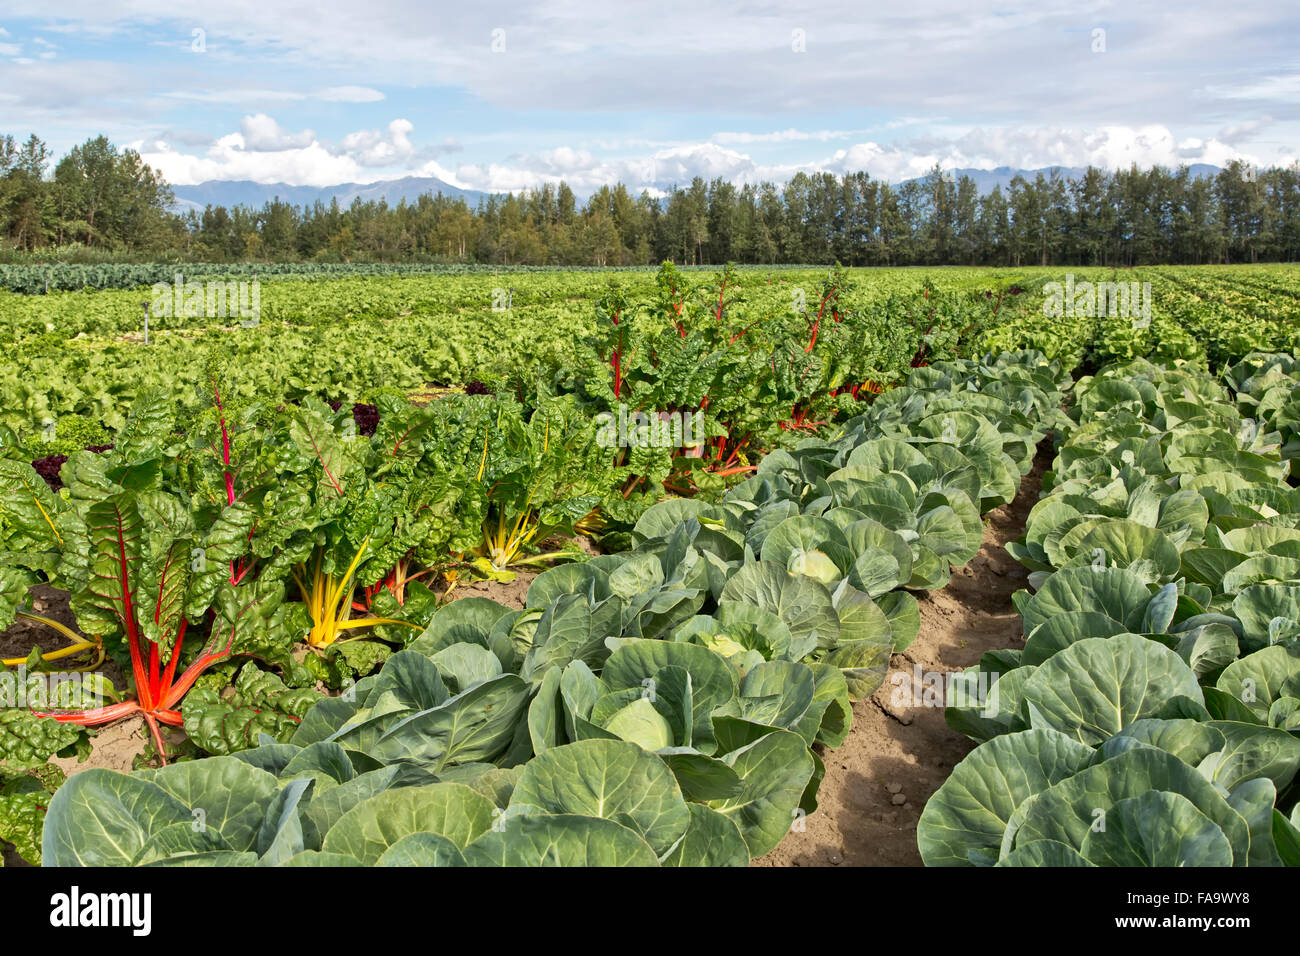 Colorful Swiss Chard   'Beta vulgaris'  & Cabbage  'Brassica oleracea'  growing in field, pre - Stock Image